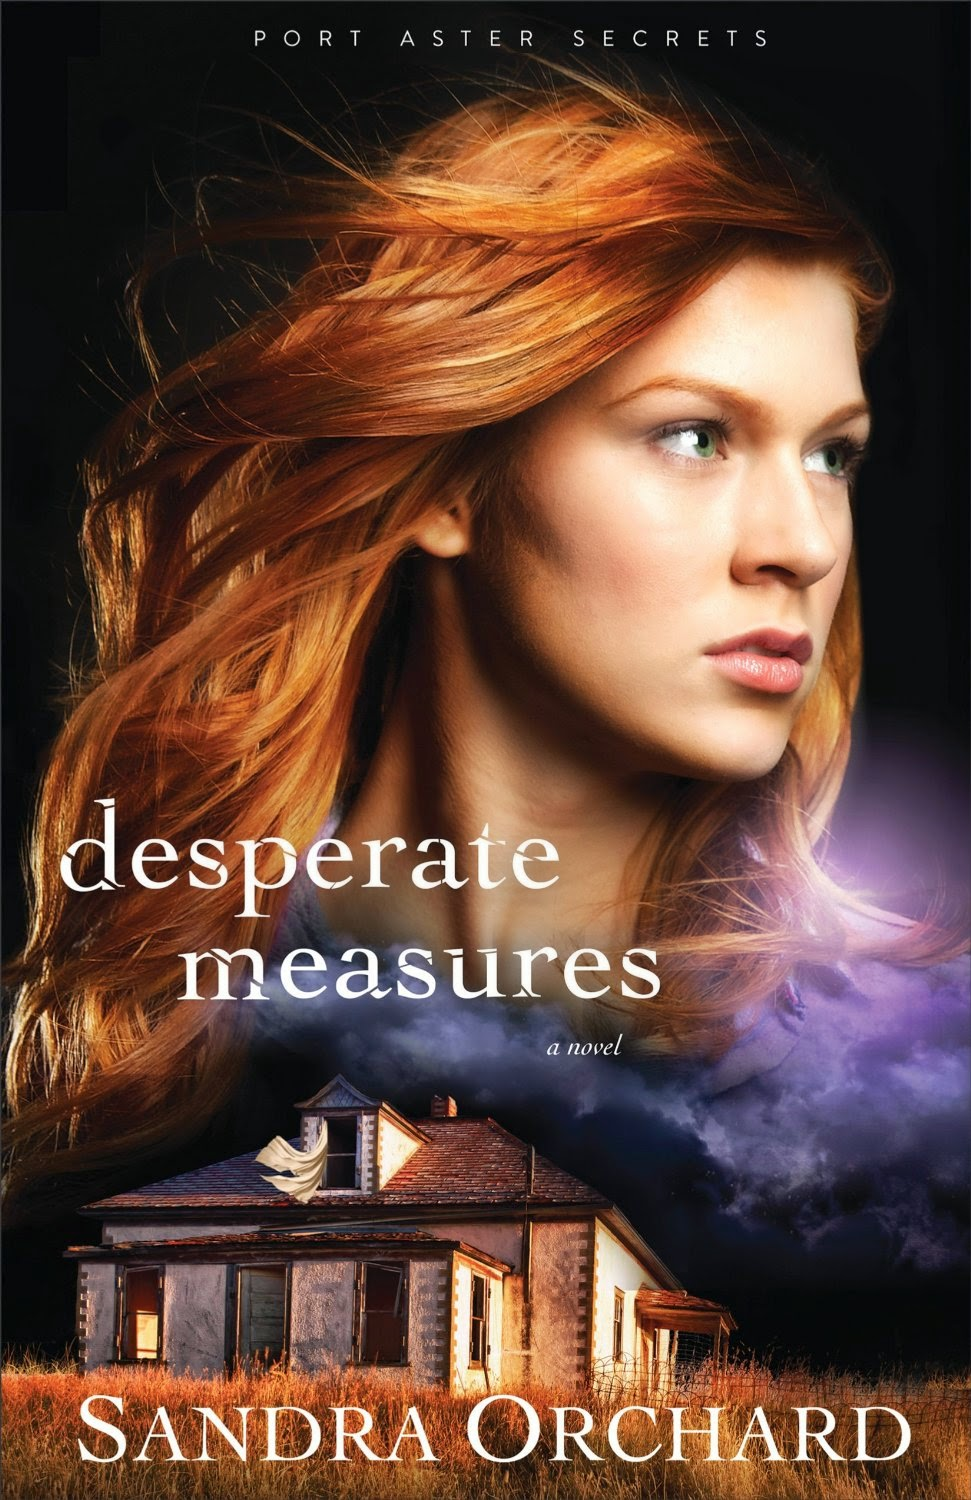 http://www.amazon.com/Desperate-Measures-Port-Aster-Secrets-ebook/dp/B00QMSCJ1M/ref=sr_1_1?s=books&ie=UTF8&qid=1434556314&sr=1-1&keywords=desperate+measures+sandra+orchard